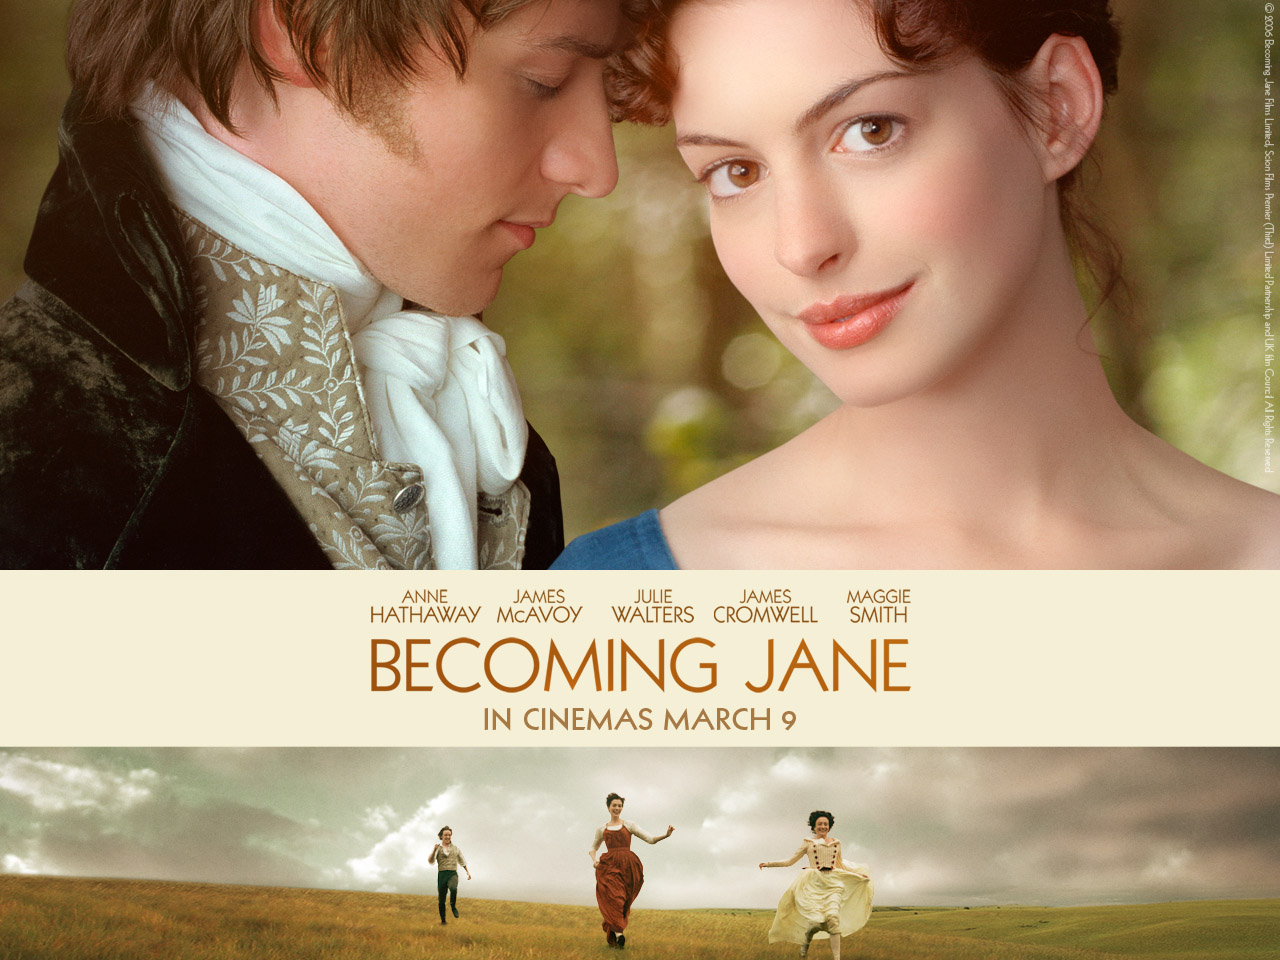 http://3.bp.blogspot.com/-0CxTTjB5Pik/Tq4JjI0TblI/AAAAAAAACXY/xlrC2Y0ELvg/s1600/Becoming-Jane-james-mcavoy-240918_1280_960pix.jpg